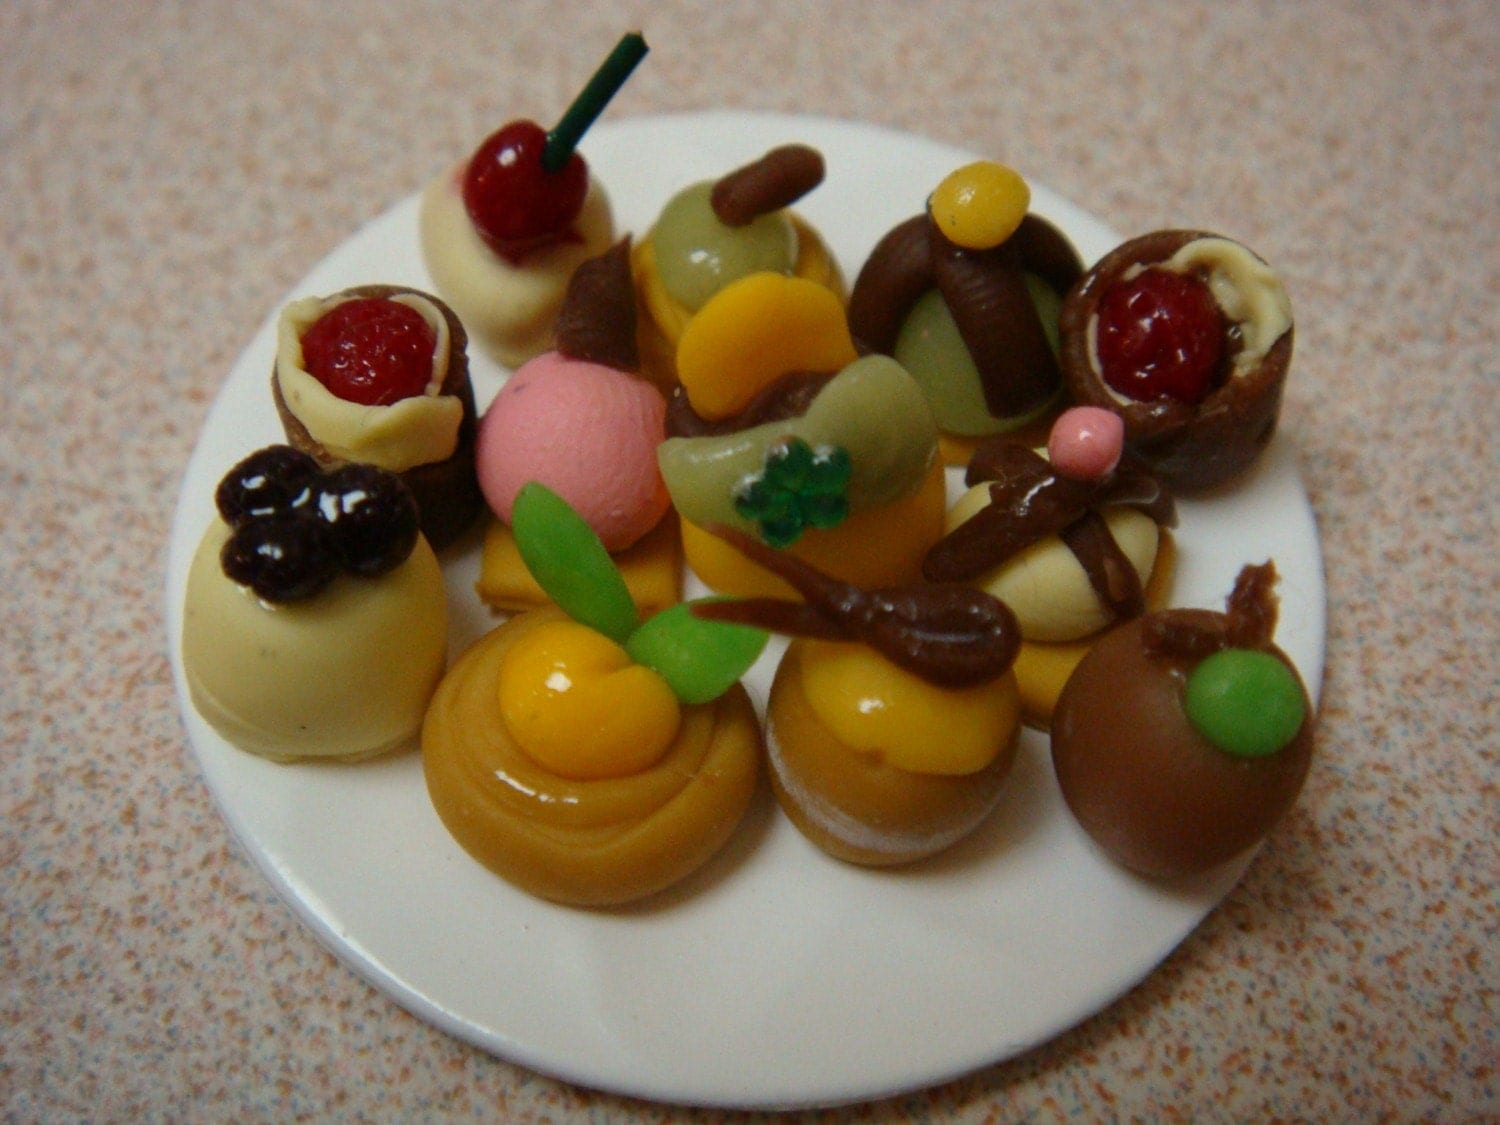 Blythe/Pullip Dollhouse Miniature - Polymer Clay - Assorted Cakes and Tarts (Dozen)